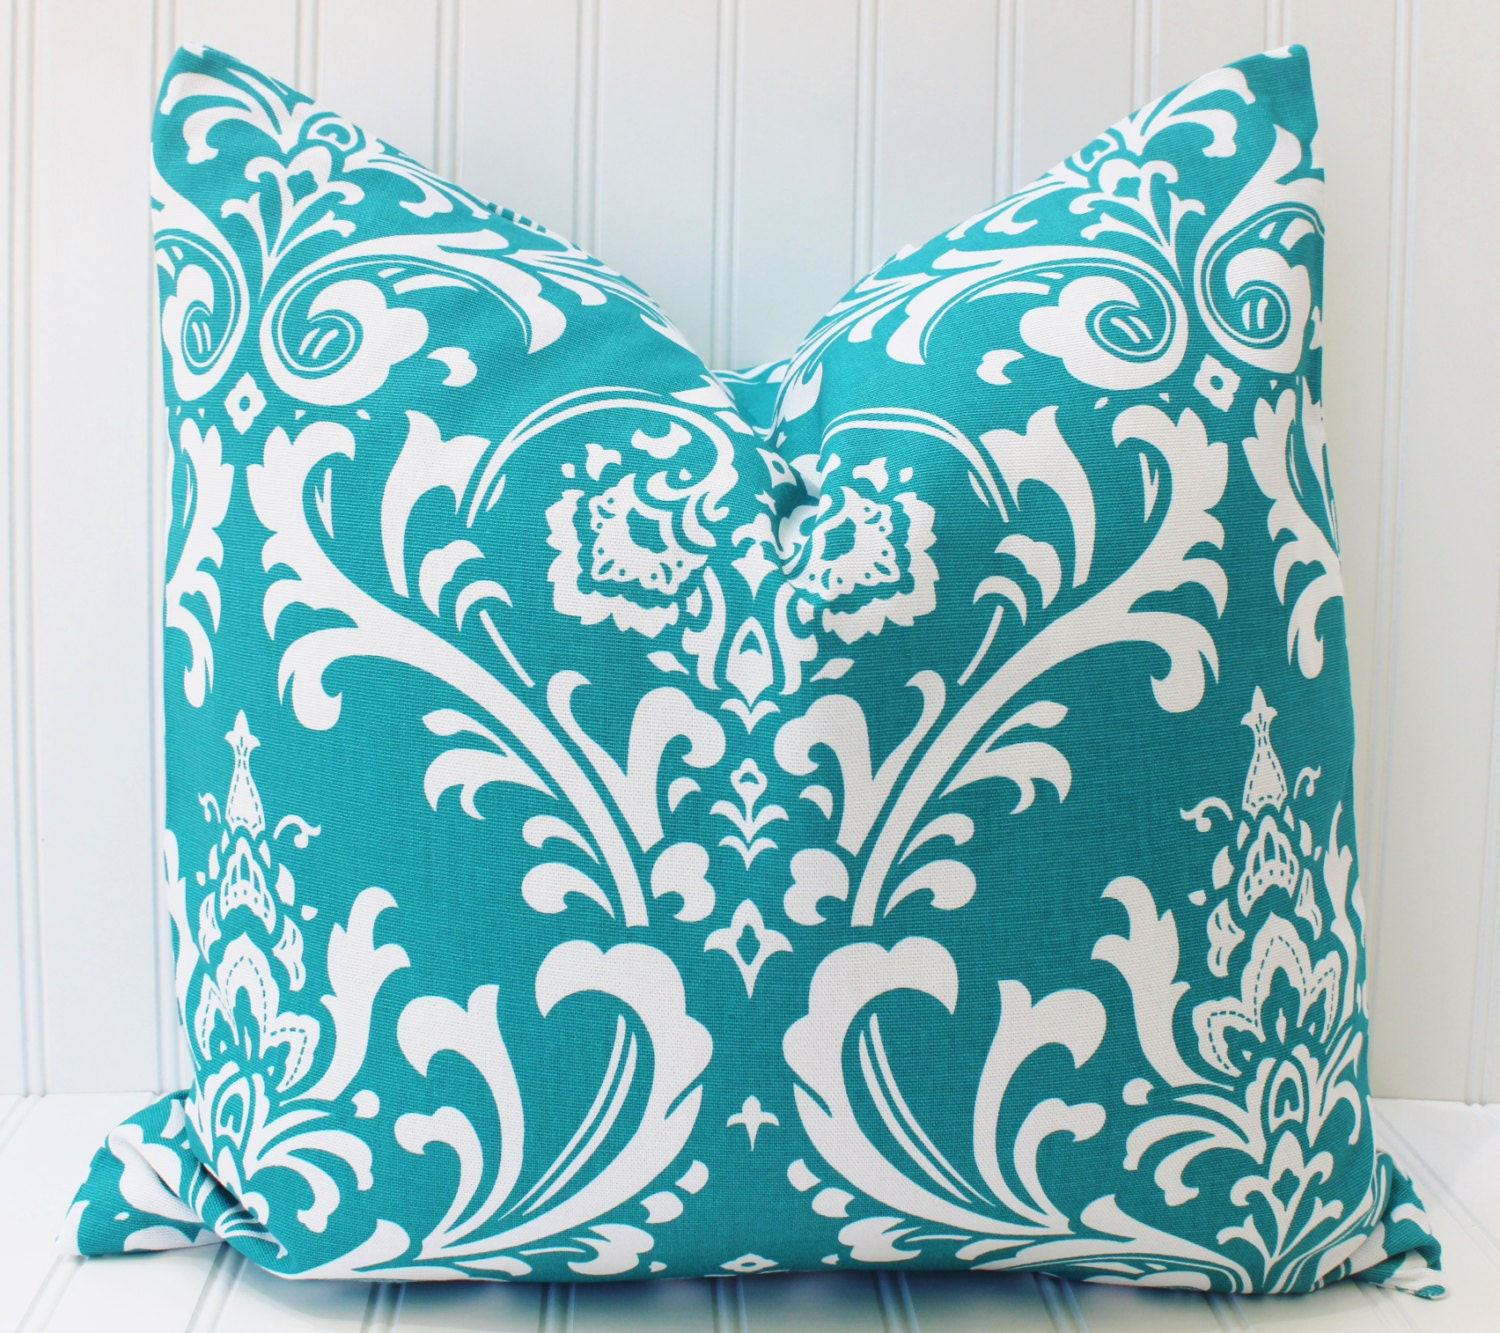 Decorative Pillows In Turquoise : Turquoise Pillow Decorative Pillow Throw Pillow